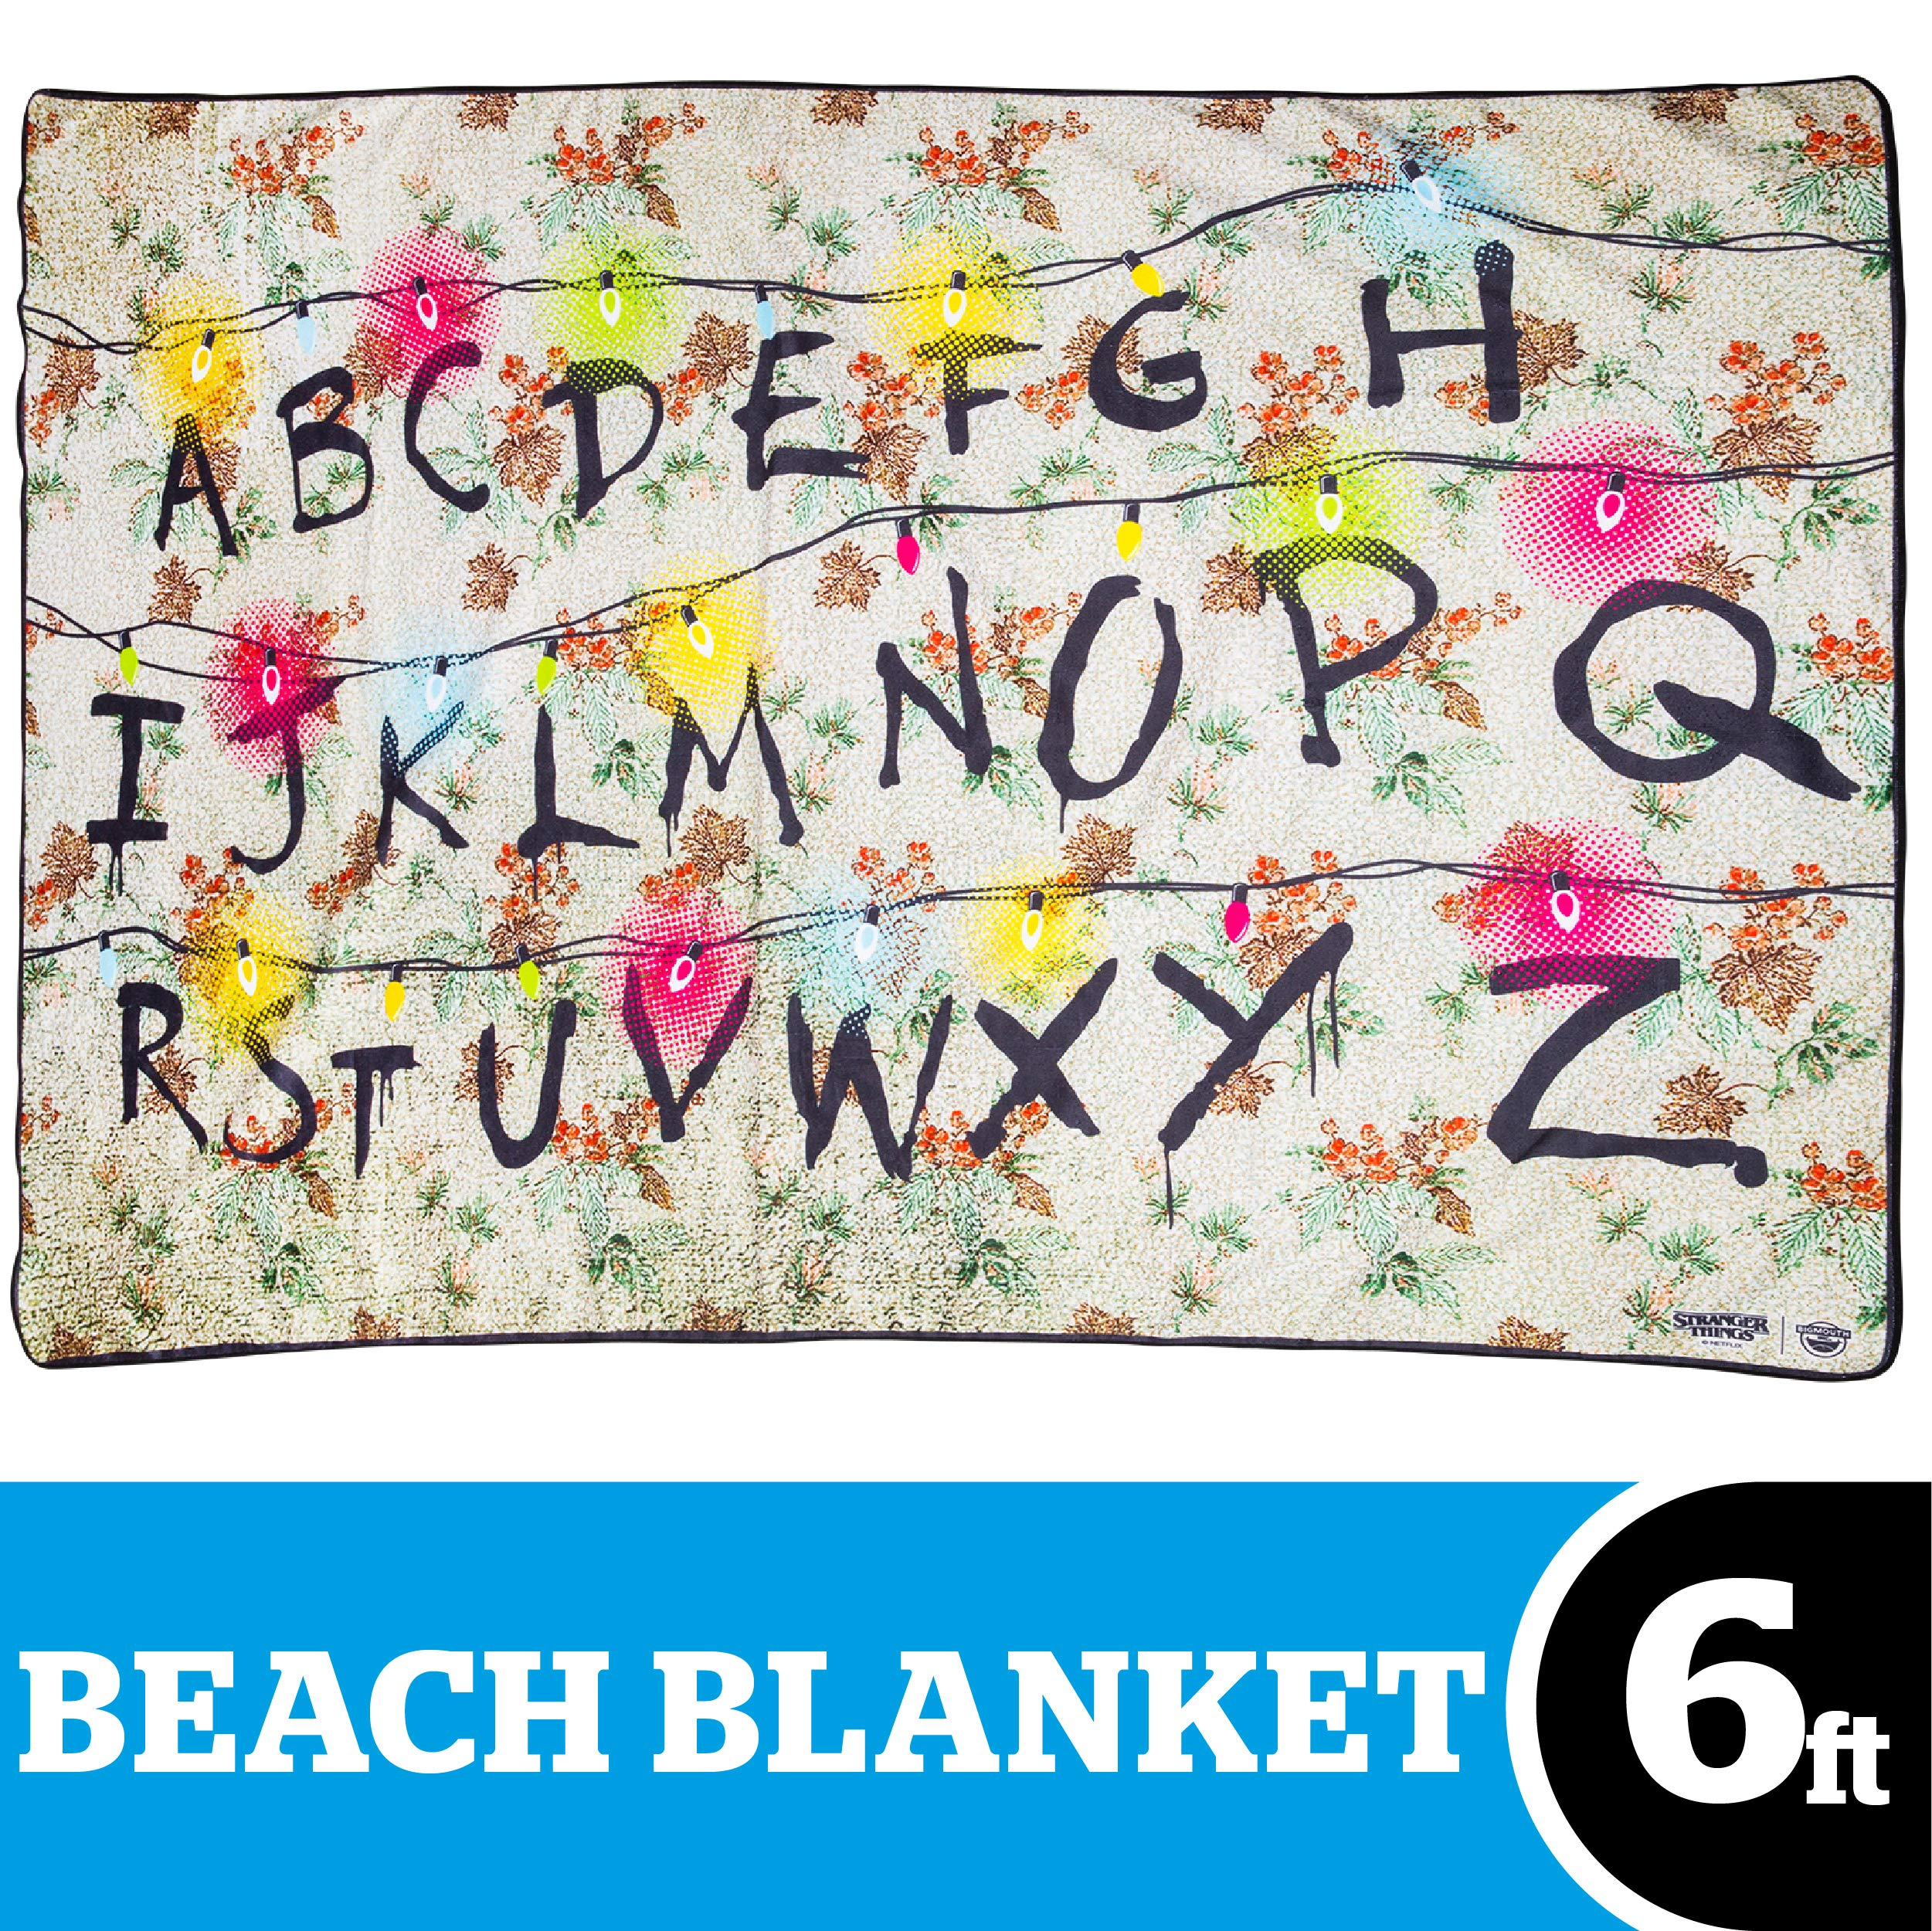 BigMouth Inc. Stranger Things Christmas Lights Alphabet Wall Beach Blanket - 6- Foot Oversized Beach Towel Blanket with Stranger Things Theme, Ultra-Soft, Machine Washable, Makes a Great Gift